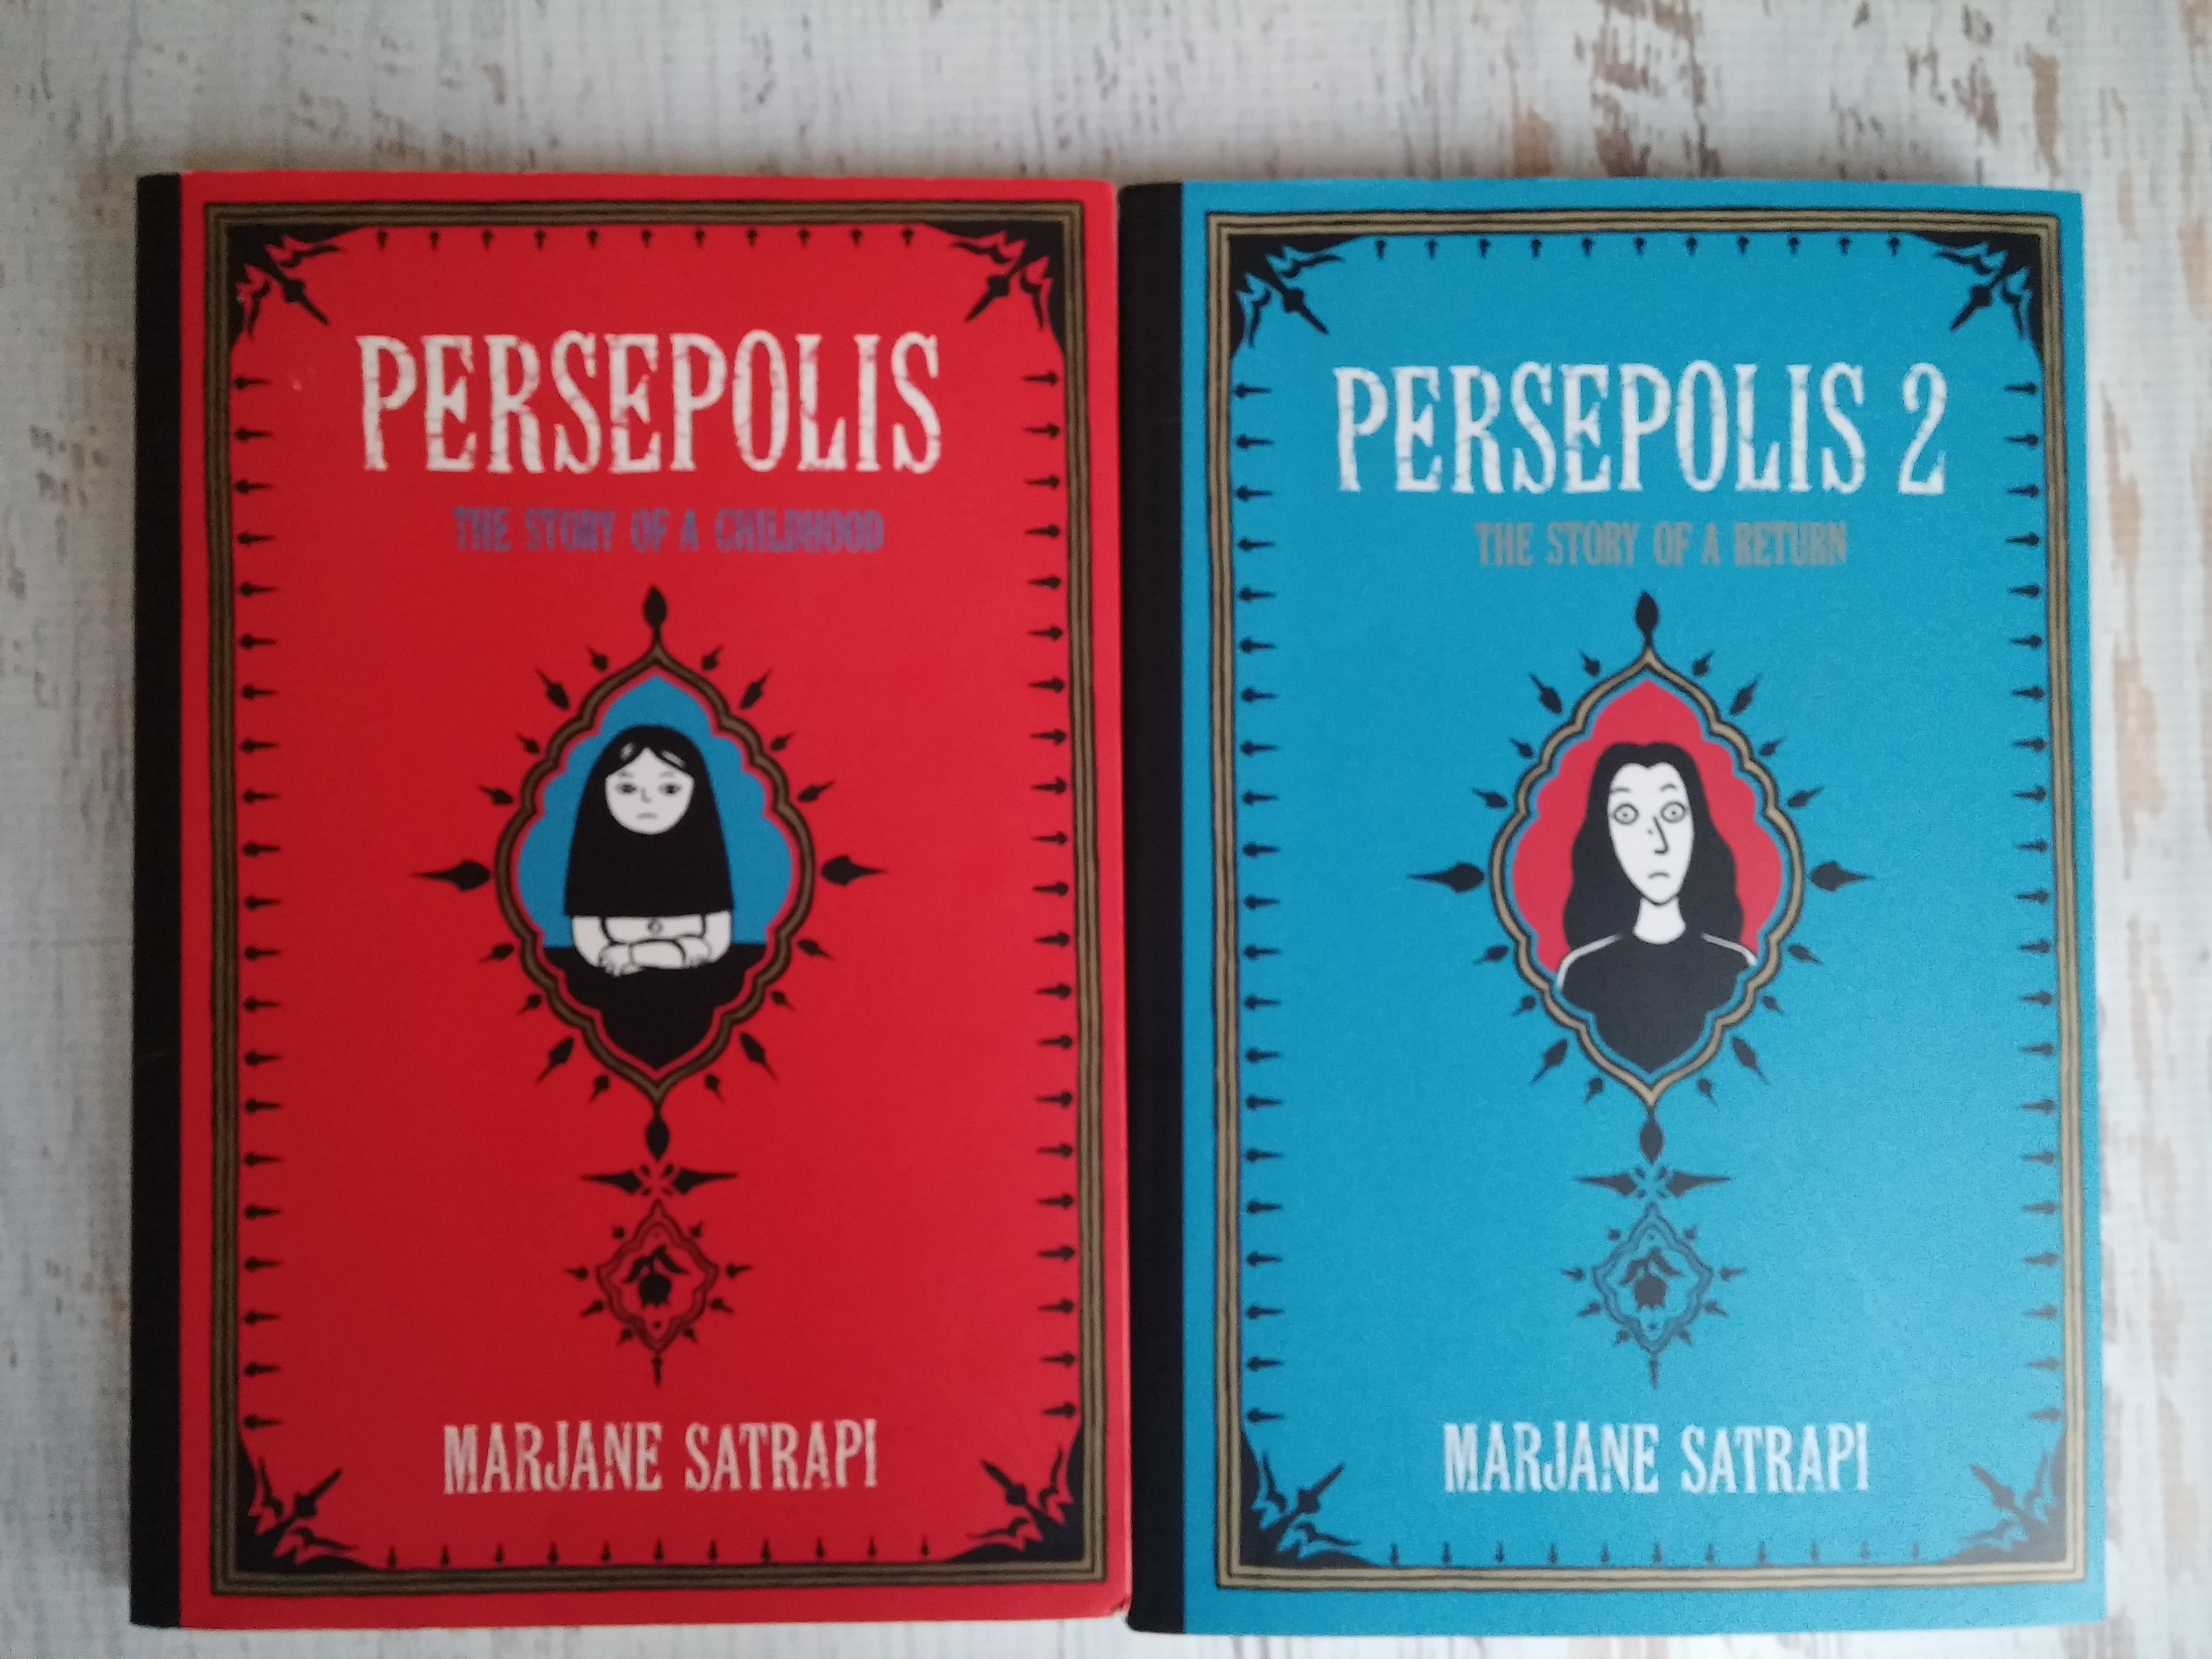 review paper on persepolis Persepolis essay questions  persepolis, written by marjane satrapi, is a graphic novel that tells the story of marjane when she was a young girl living in tehran, iran the novel takes place.